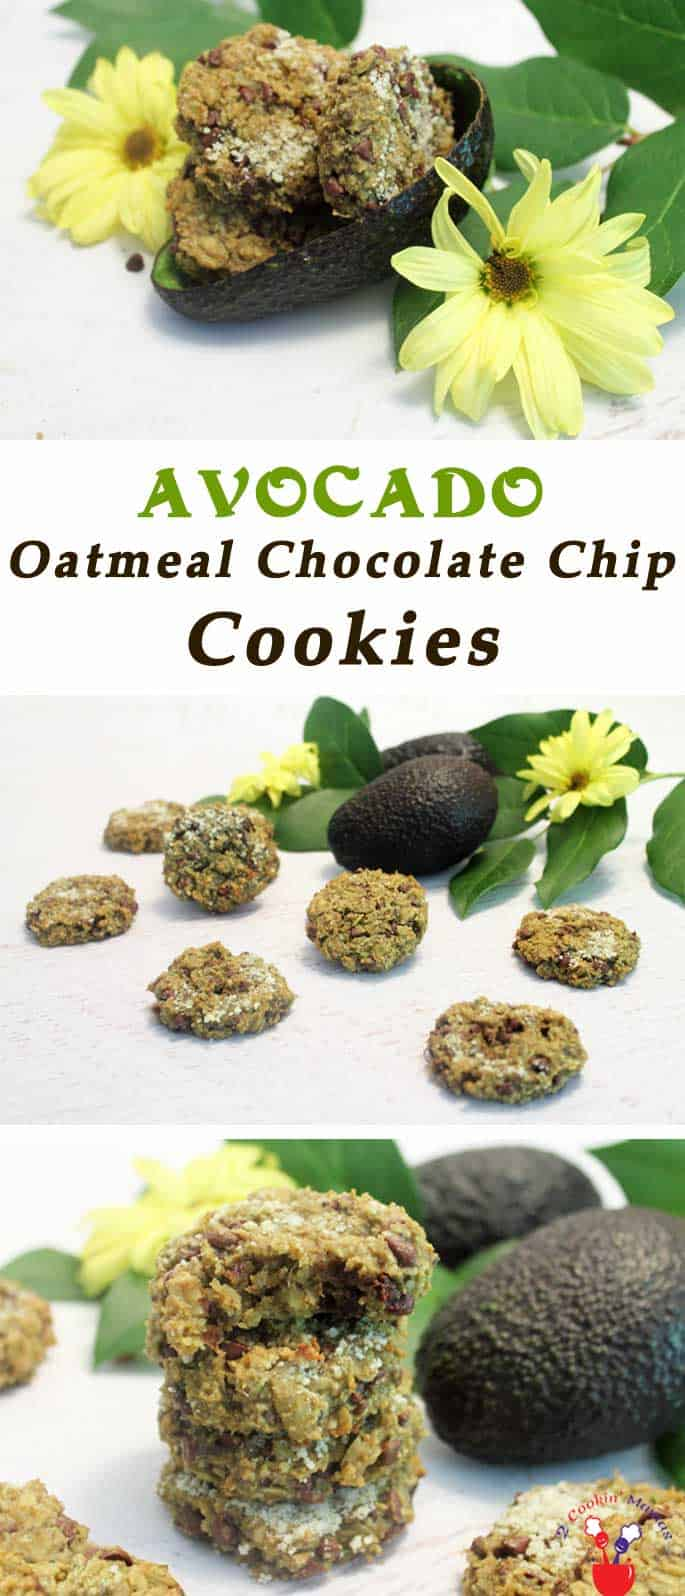 Avocado Oatmeal Chocolate Chip Cookies | 2 Cookin Mamas Avocado Oatmeal Chocolate Chip Cookies are soft, chewy cookies that are not only delicious but healthy, gluten & dairy-free too! Go ahead, enjoy!